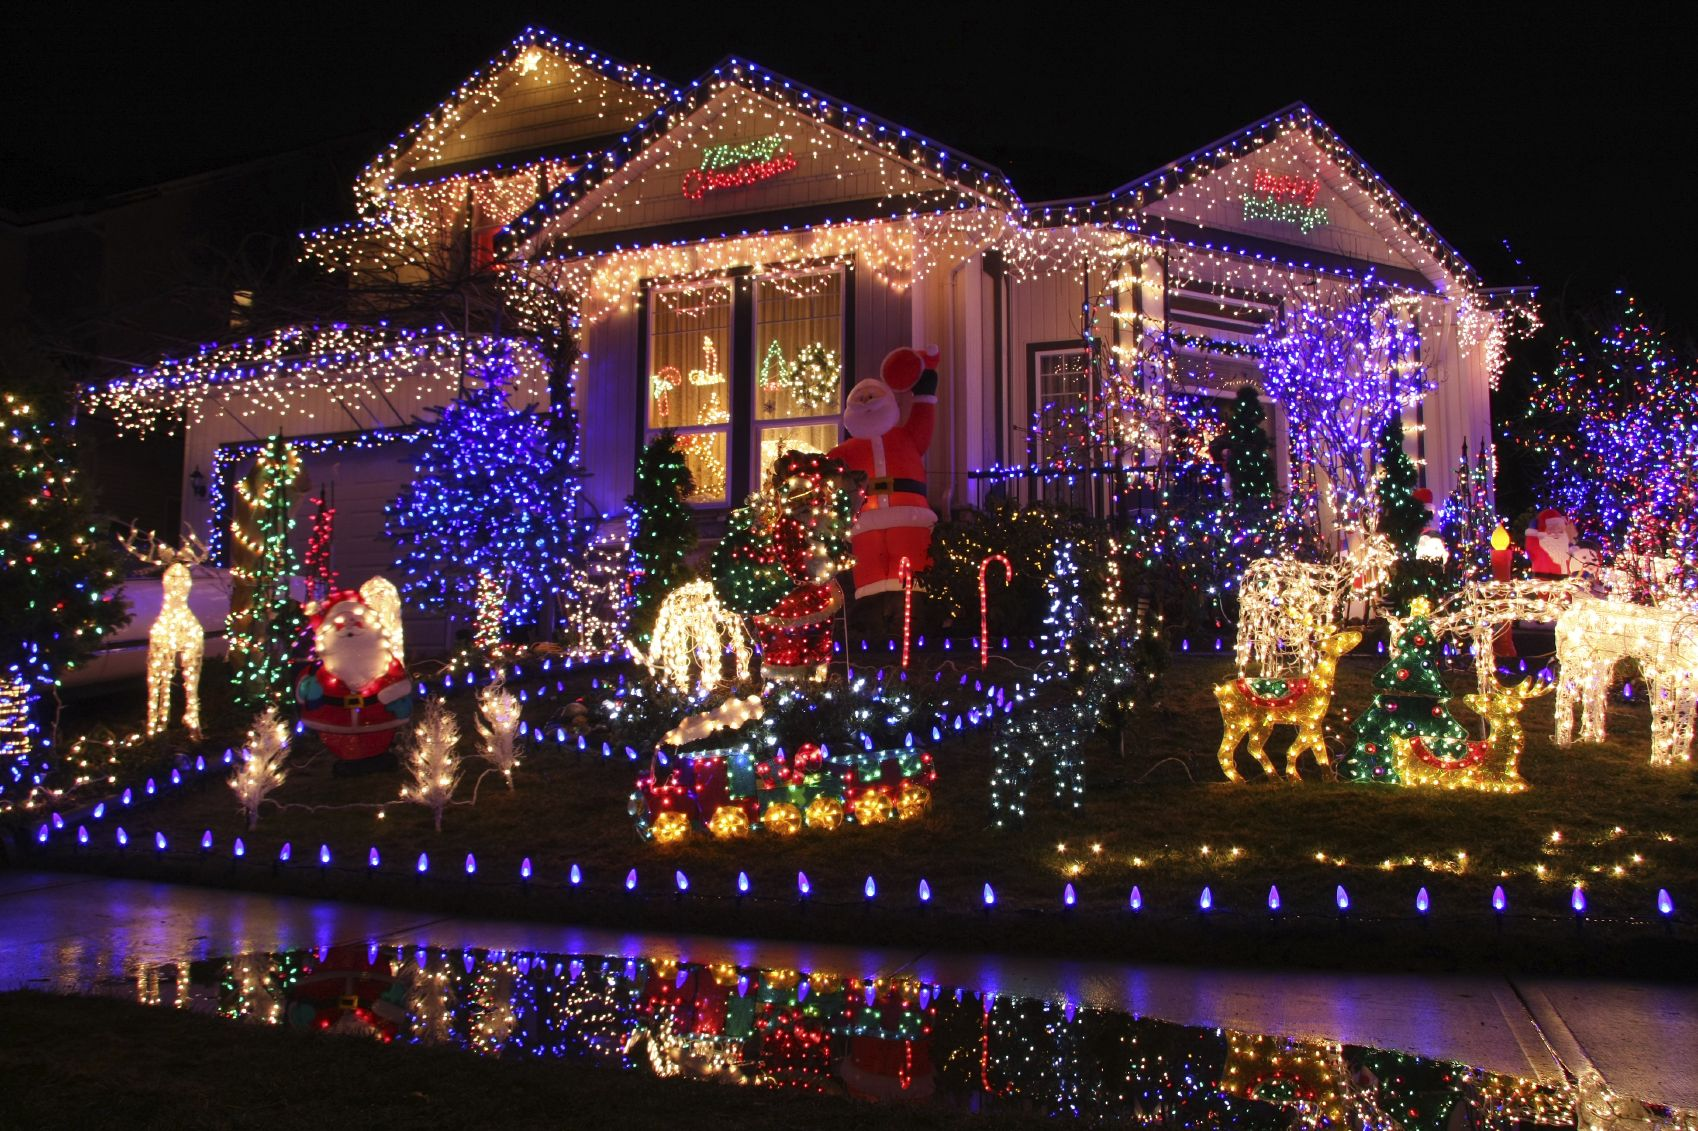 Clark Griswold Get Ready U S Imports Of Christmas Decorations Are Up 92 Outdoor Christmas Lights Decorating With Christmas Lights Christmas Light Displays